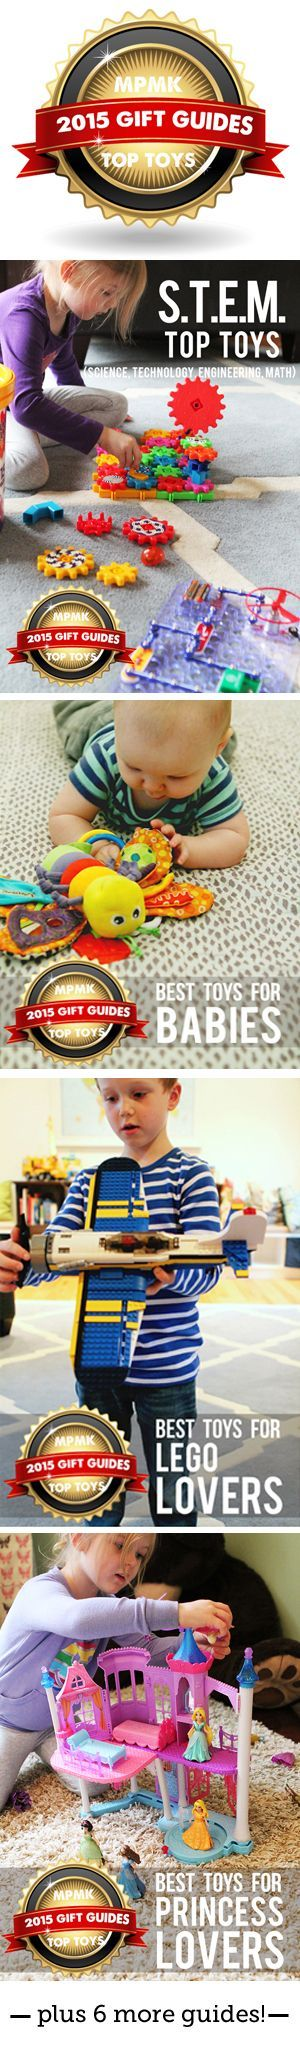 MPMK Toy Gift Guides- Best gift guides out there for kids... Use them every year to find great toys that will keep the kids engaged again and again!